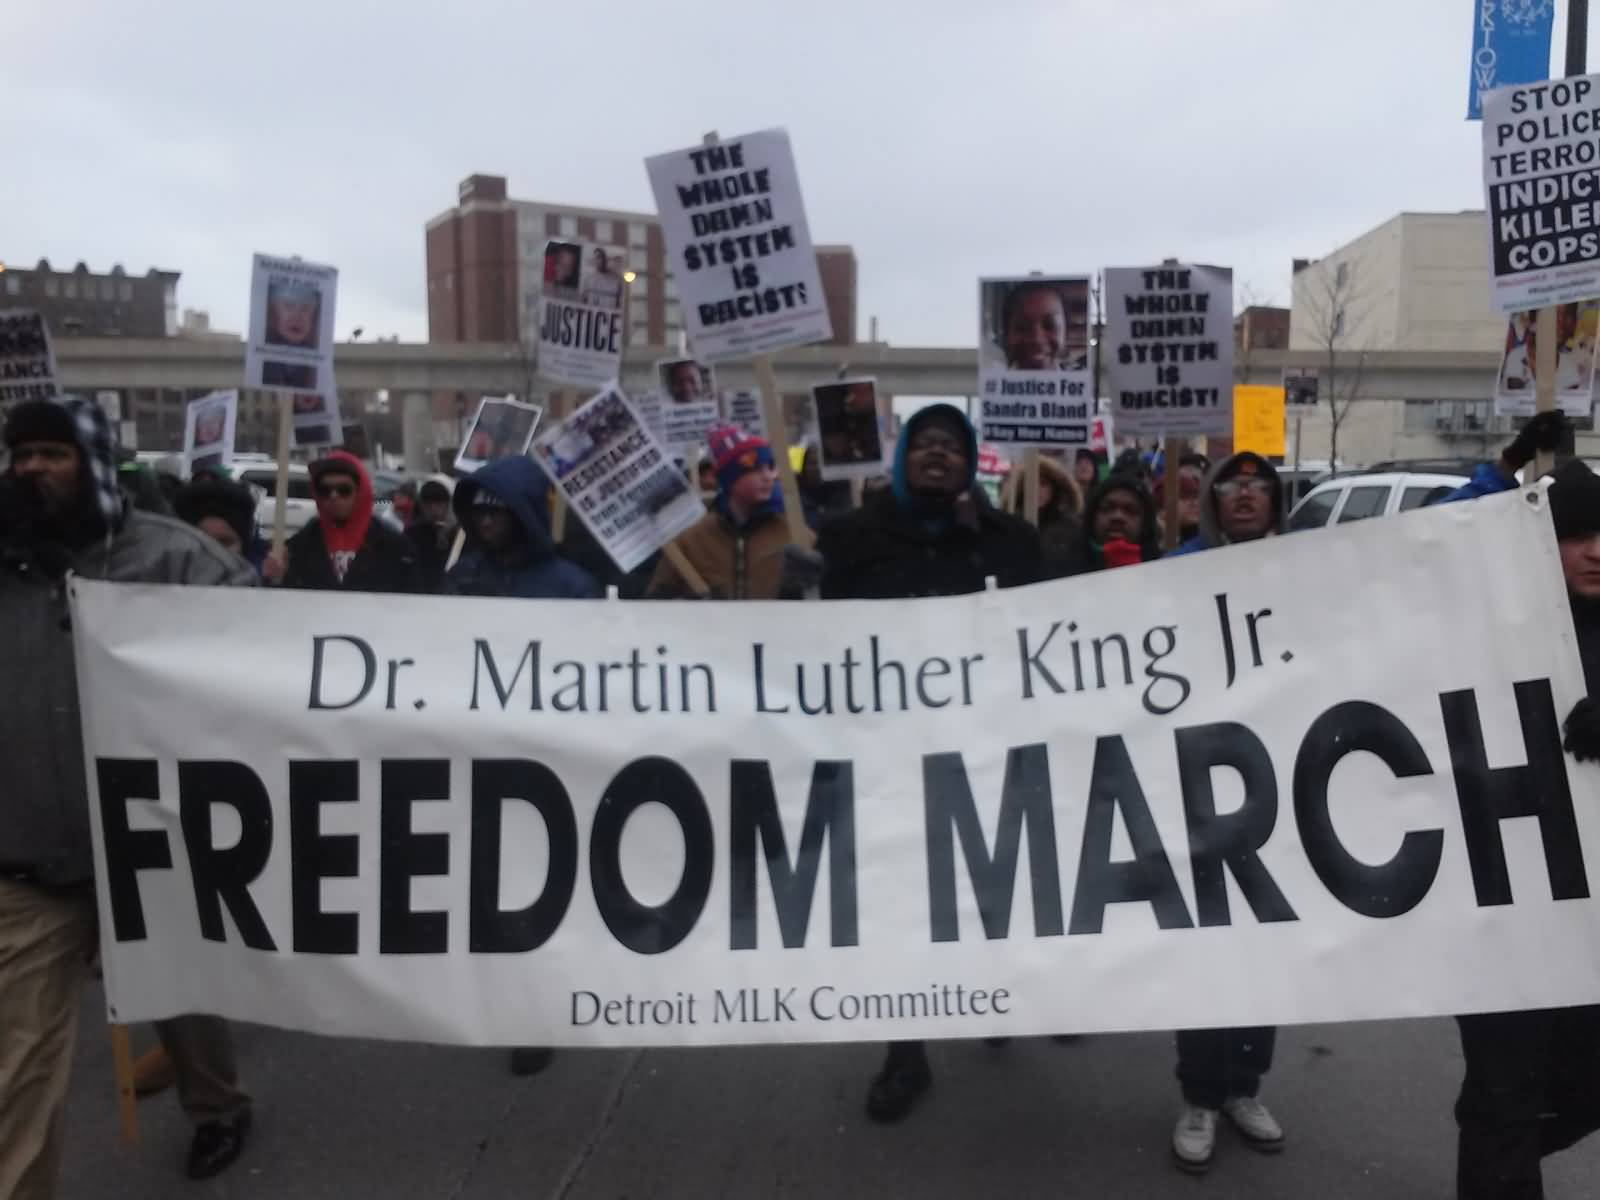 Dr. Martin Luther King Jr Day Freedom March